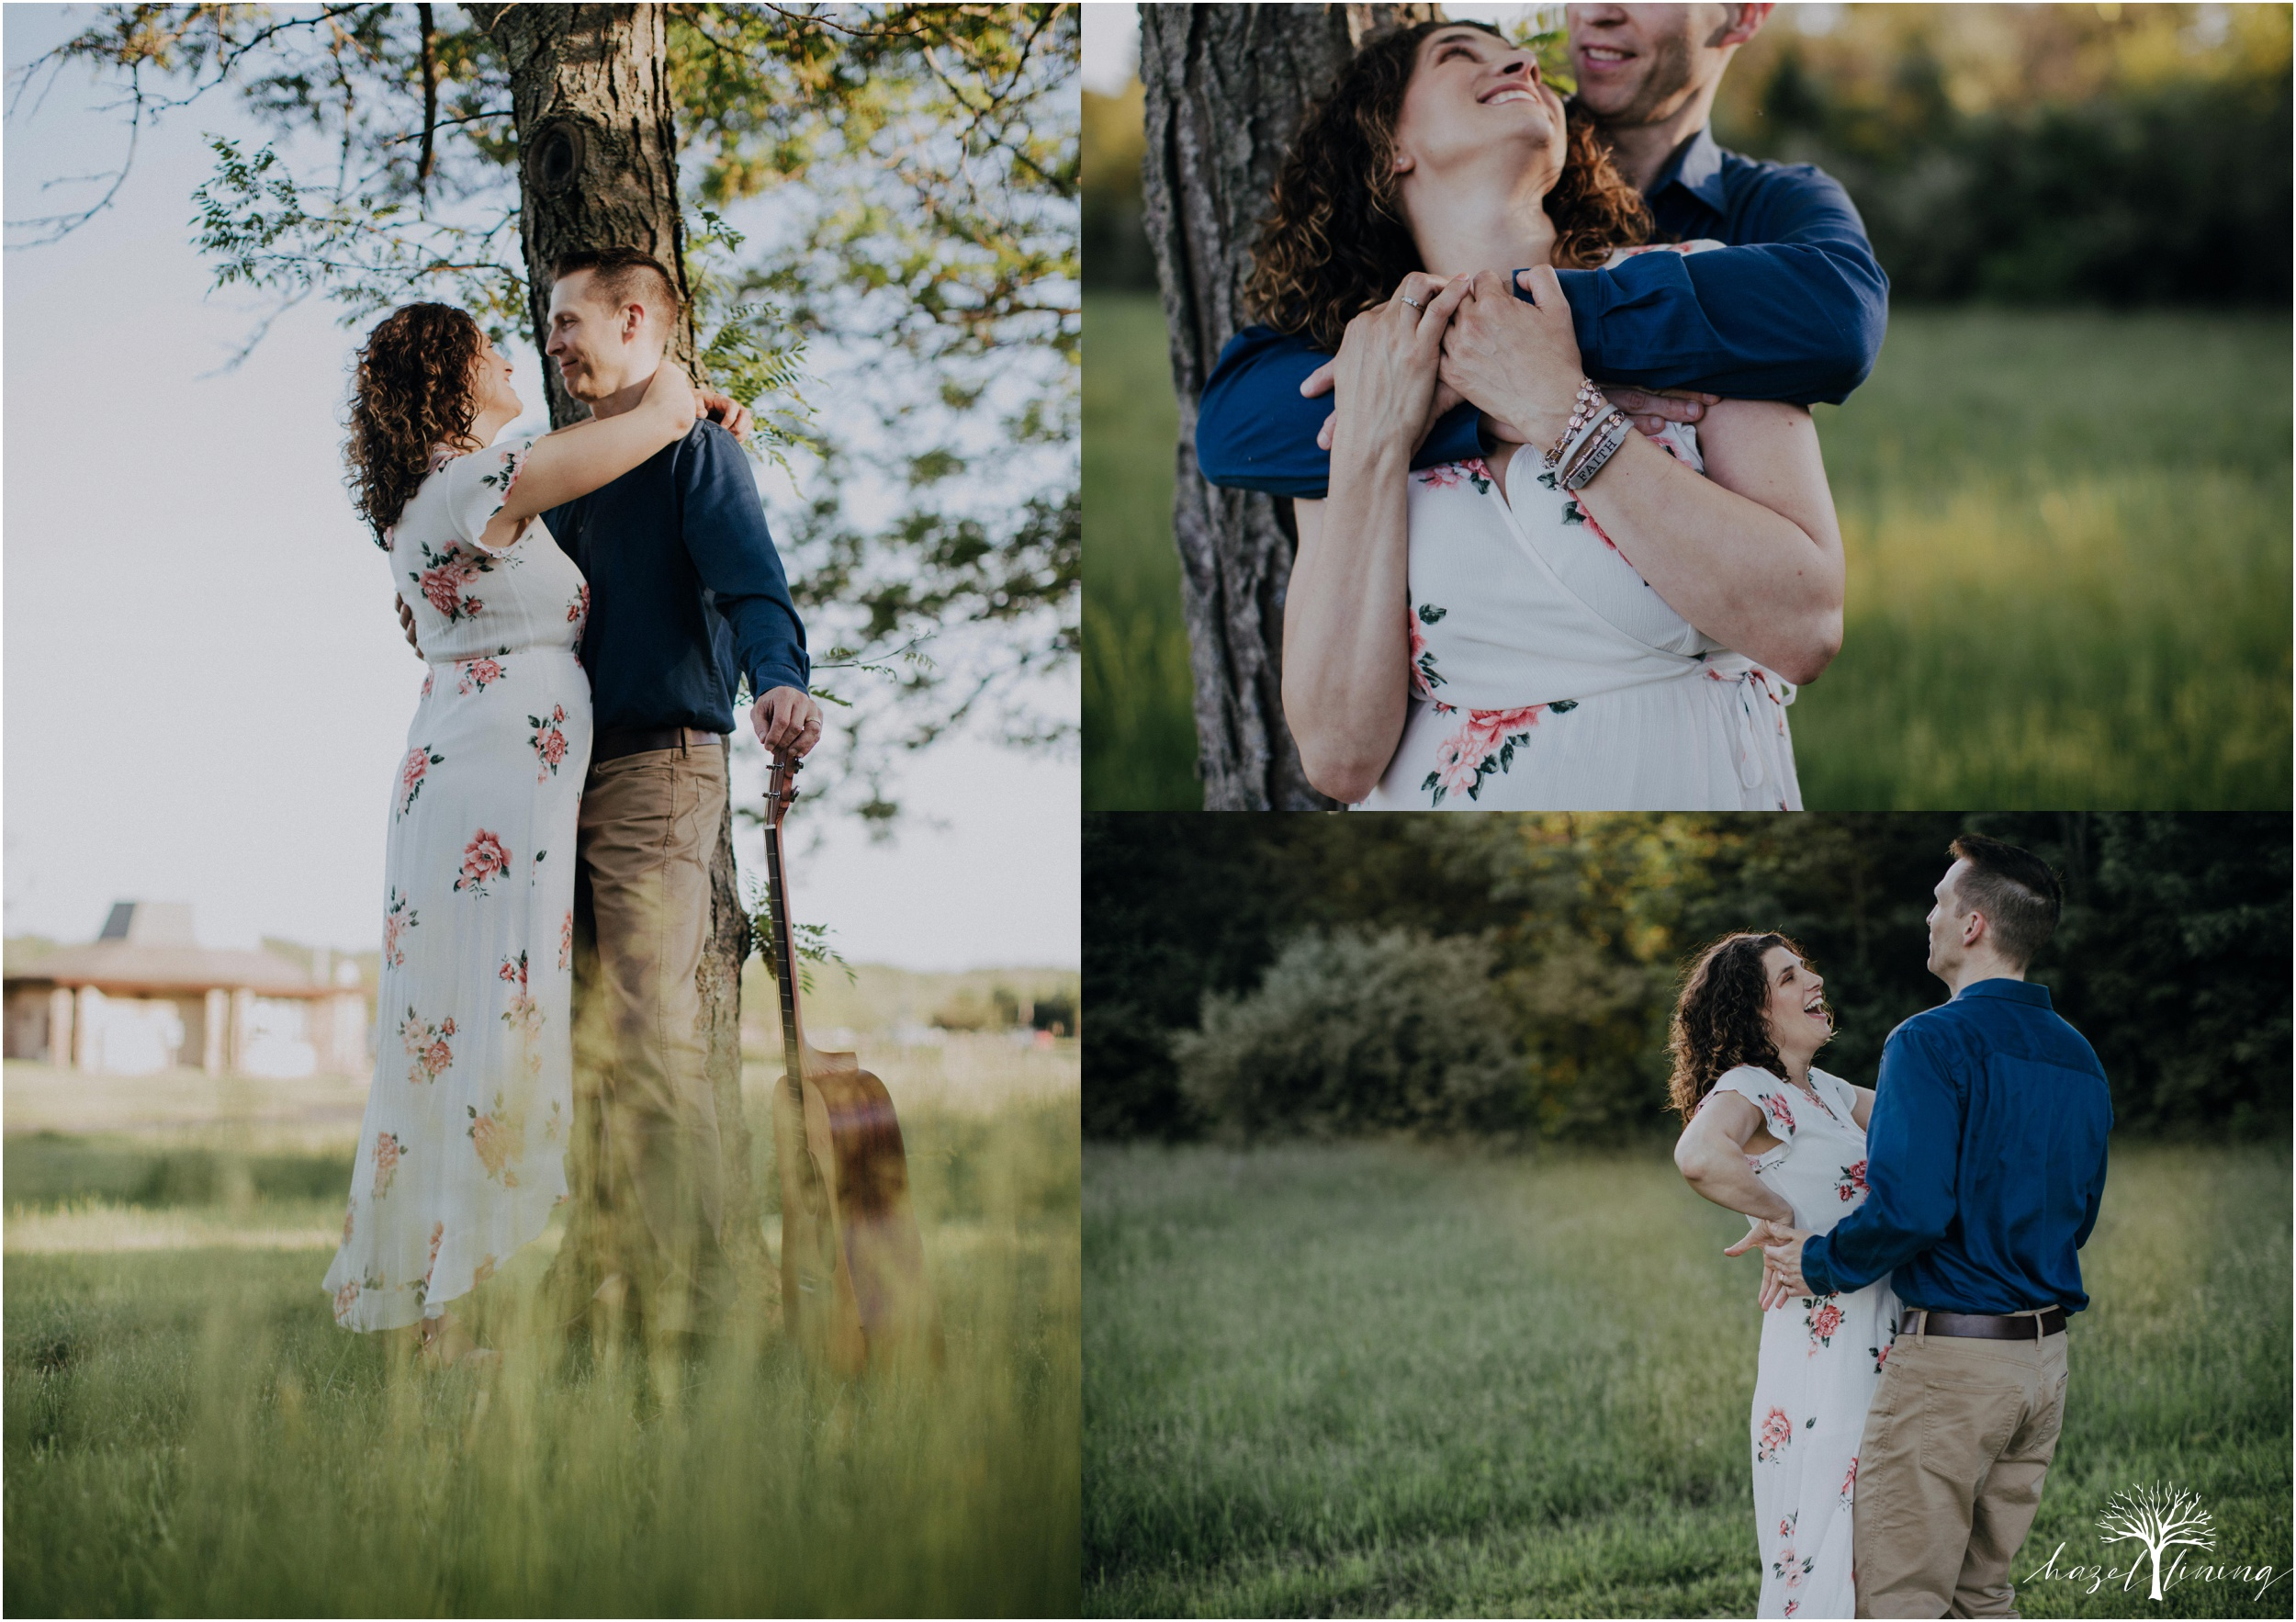 pete-rachelle-sawadski-20-year-anniversary-portrait-session-hazel-lining-photography-destination-elopement-wedding-engagement-photography_0277.jpg